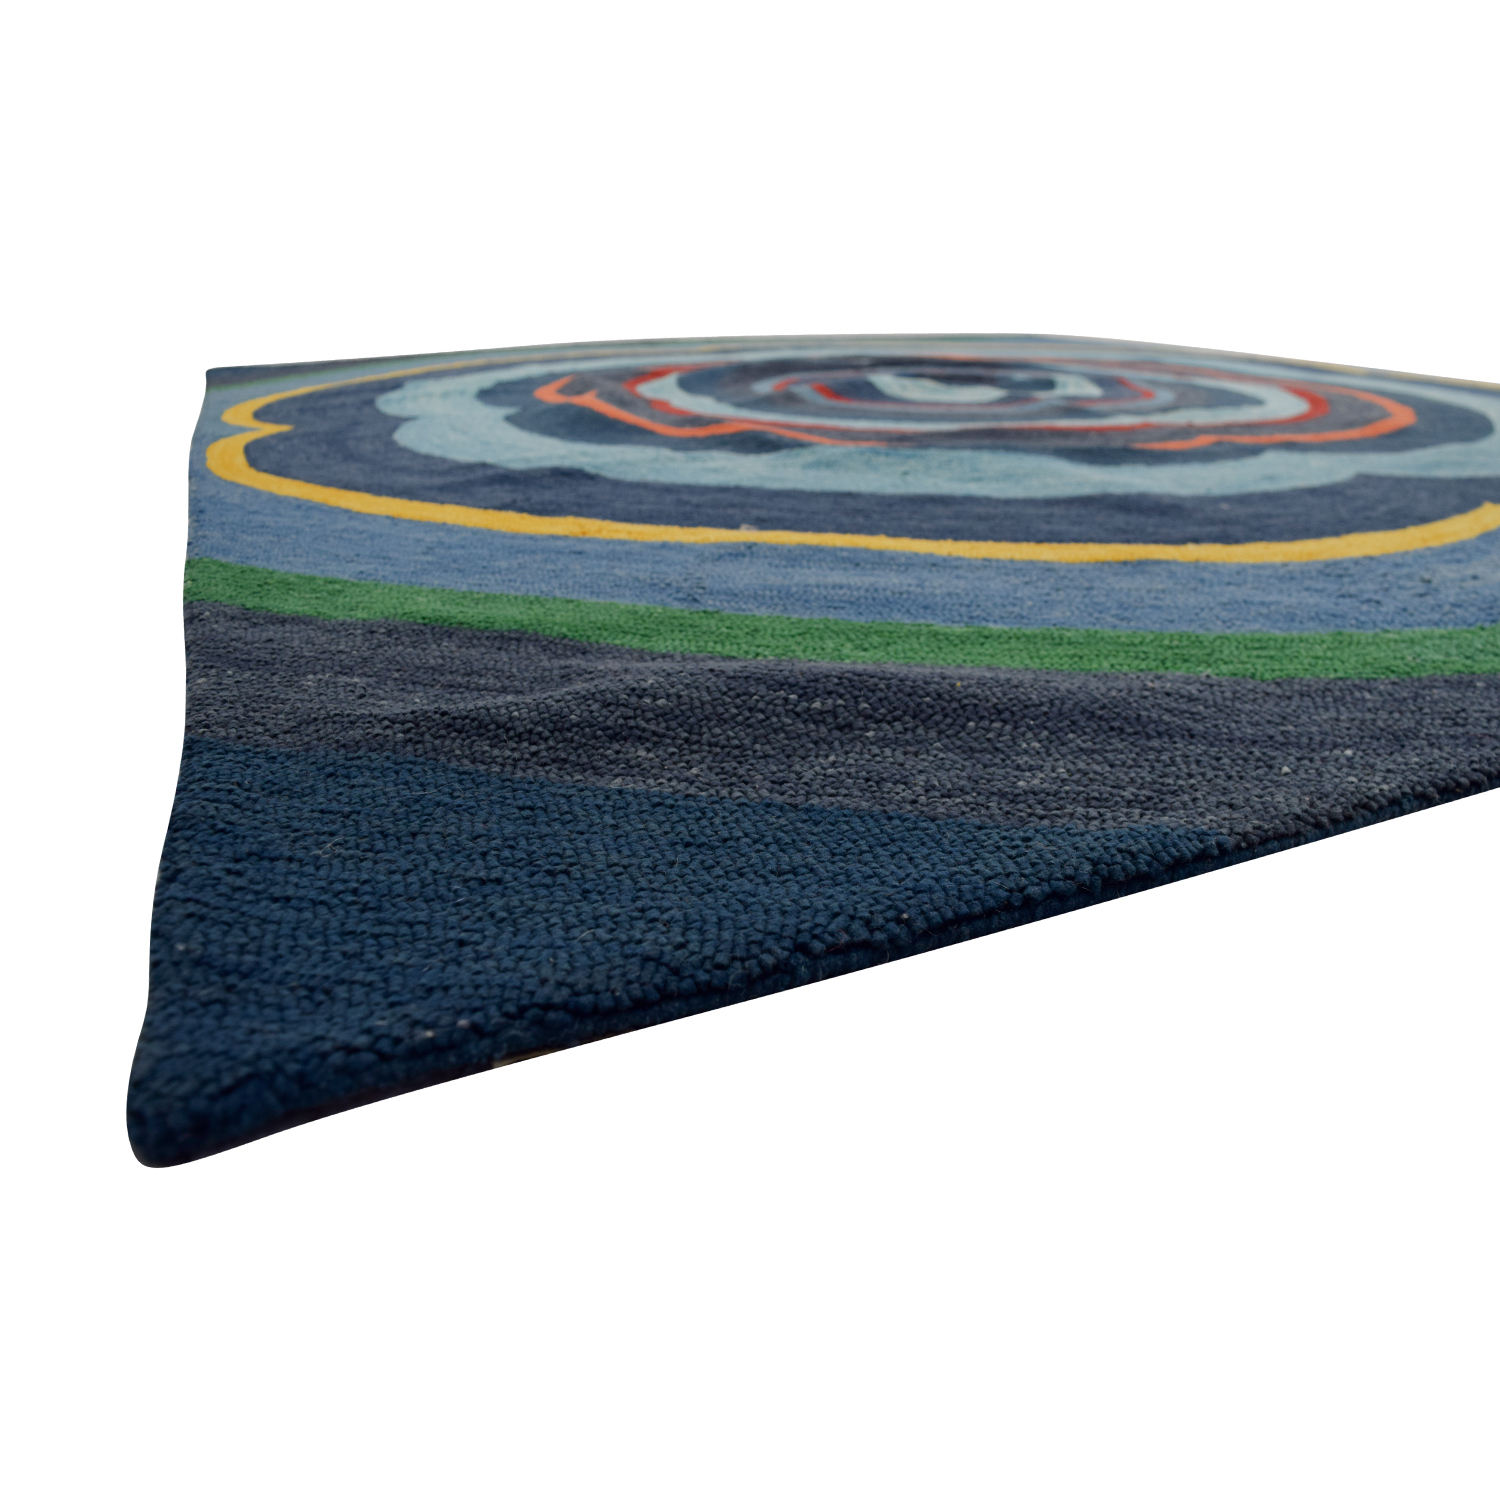 Obeetee Obeetee Annapolis Blue Hand Hooked Rug Blue/Orange/Yellow/Green